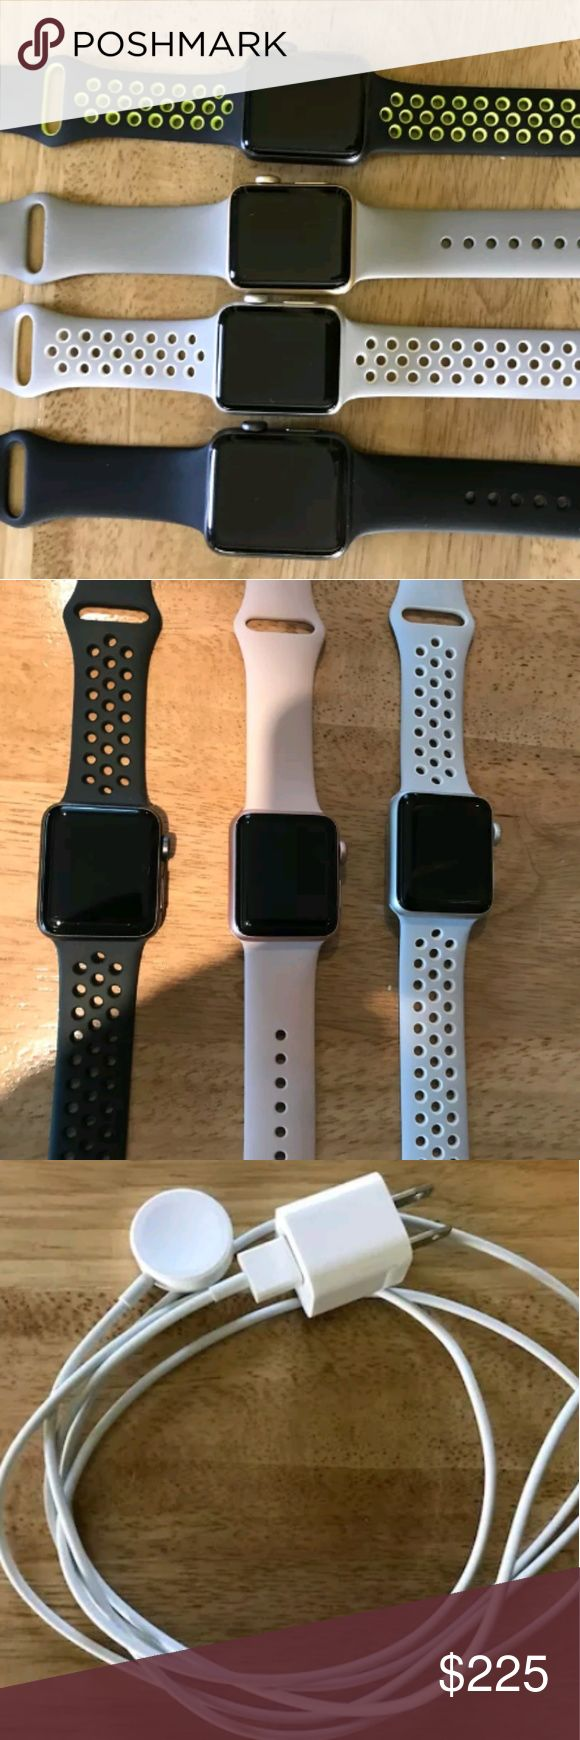 Apple watches (Series 2) Aluminum Case. Brand new just out of the box never worn. apple Accessories Watches